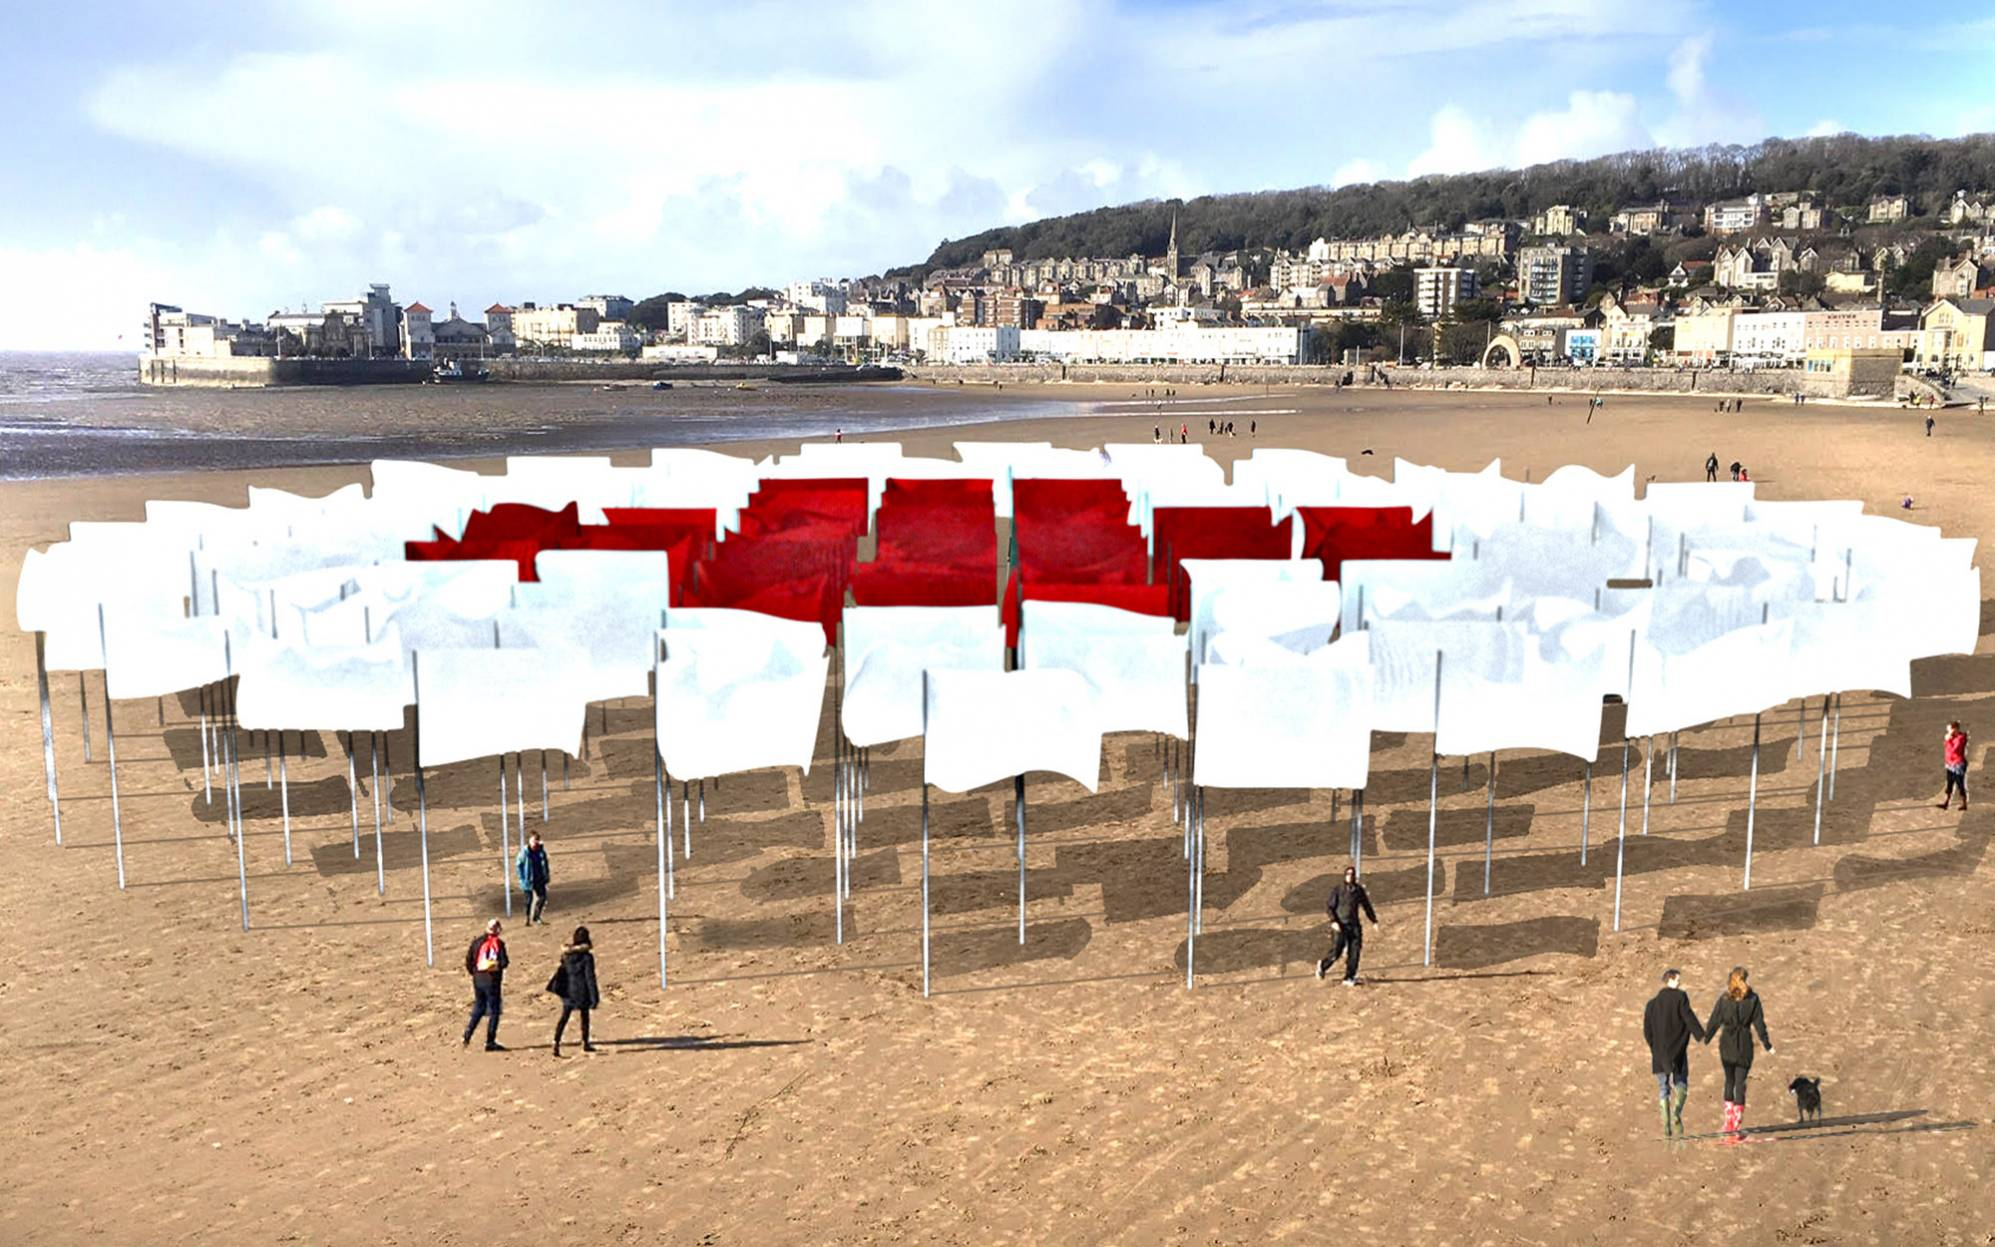 A wide angle photo of the In Memoriam exhibition. Red and white flags forming the shape of a medical cross.